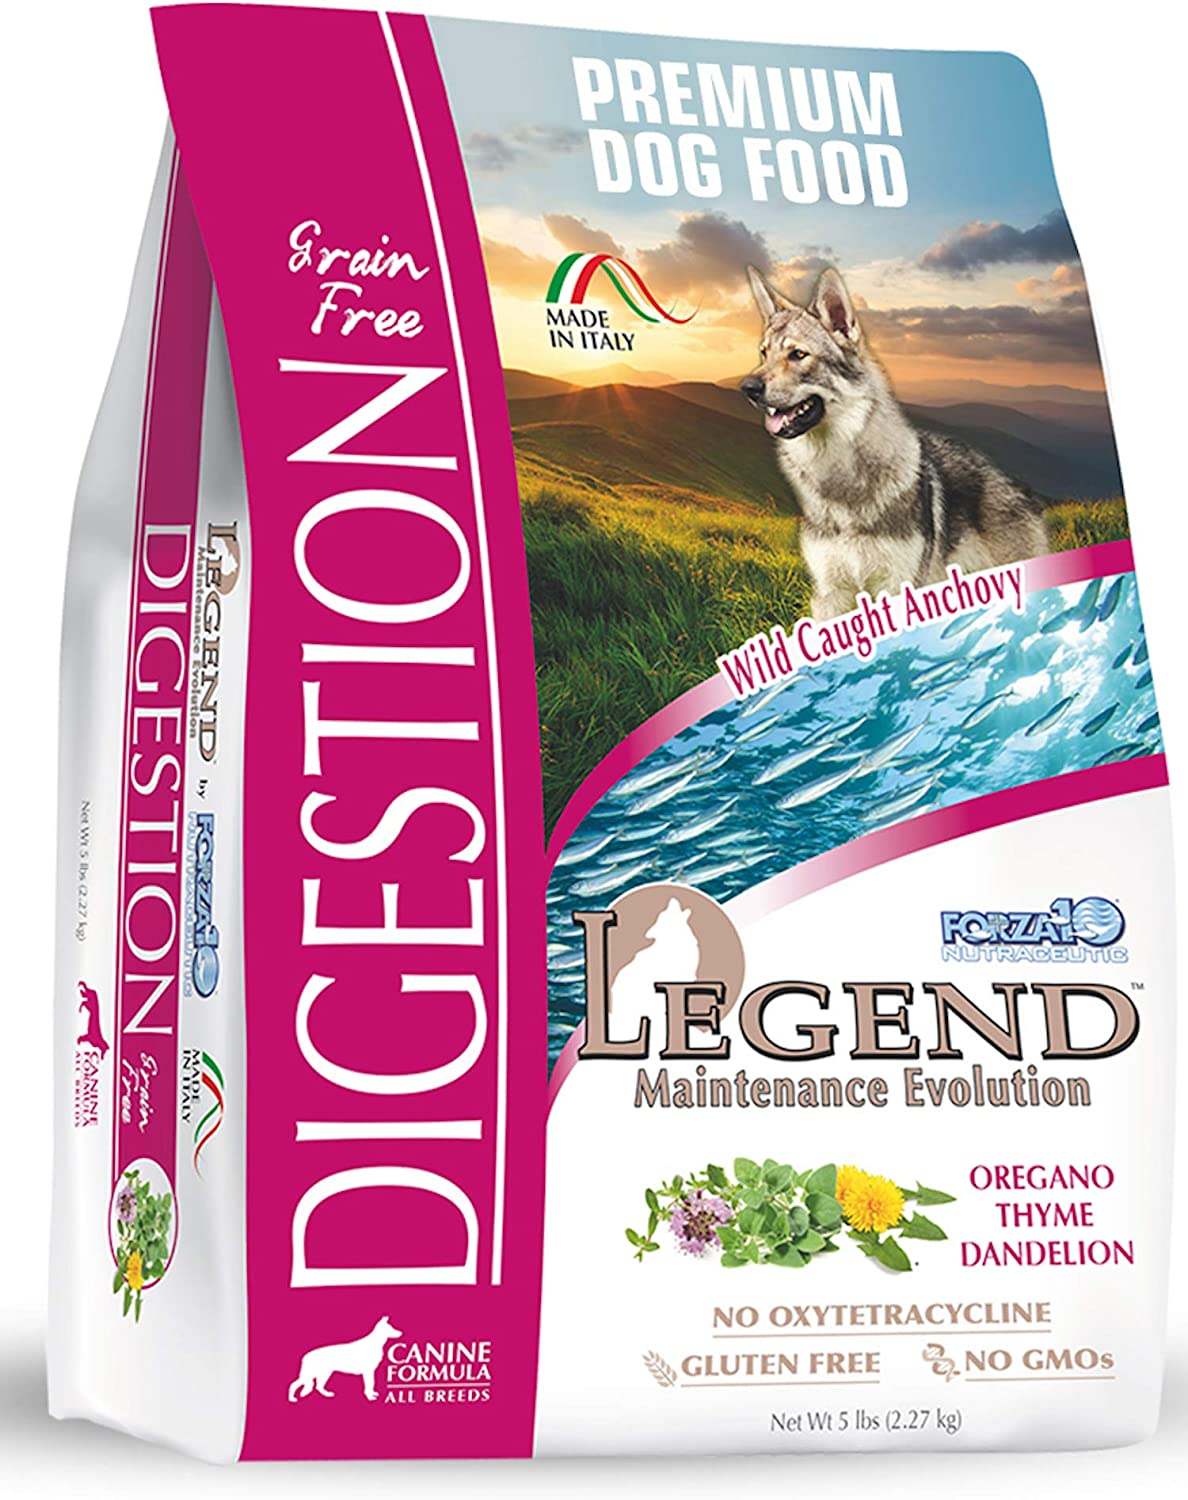 Forza10 Legend Digestion Dry Grain Free Dog Food, Sensitive Stomach Dog Food with Curative Herbs, 5 Pounds, Premium Quality Wild Caught Anchovy Flavor, for Adult Dogs, All Breed